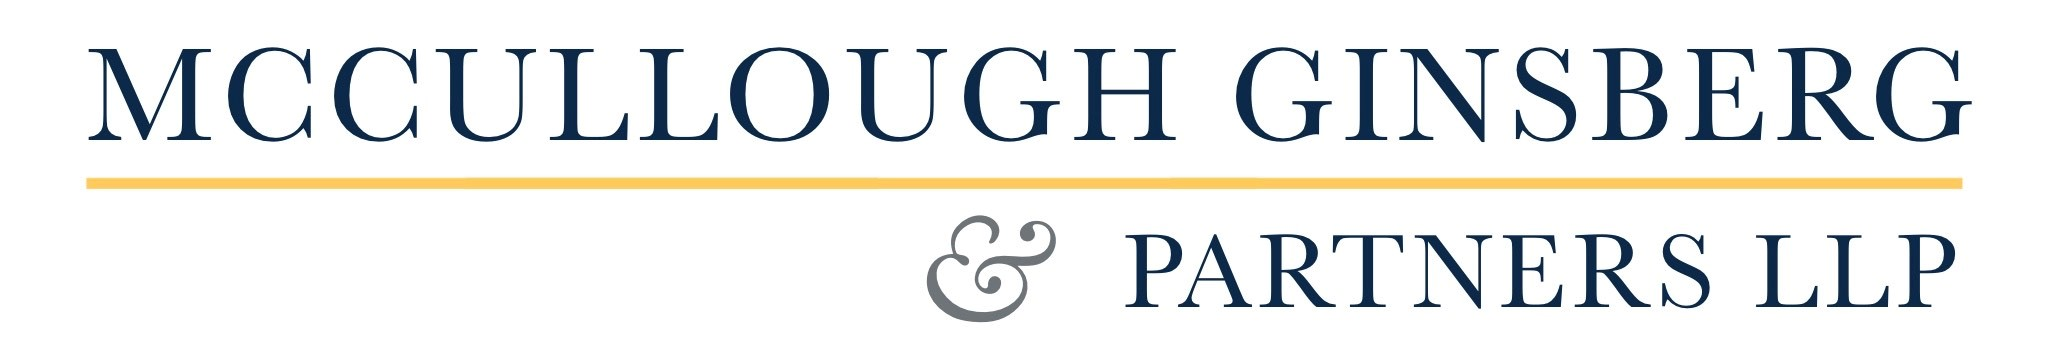 McCullough Ginsberg & Partners LLP